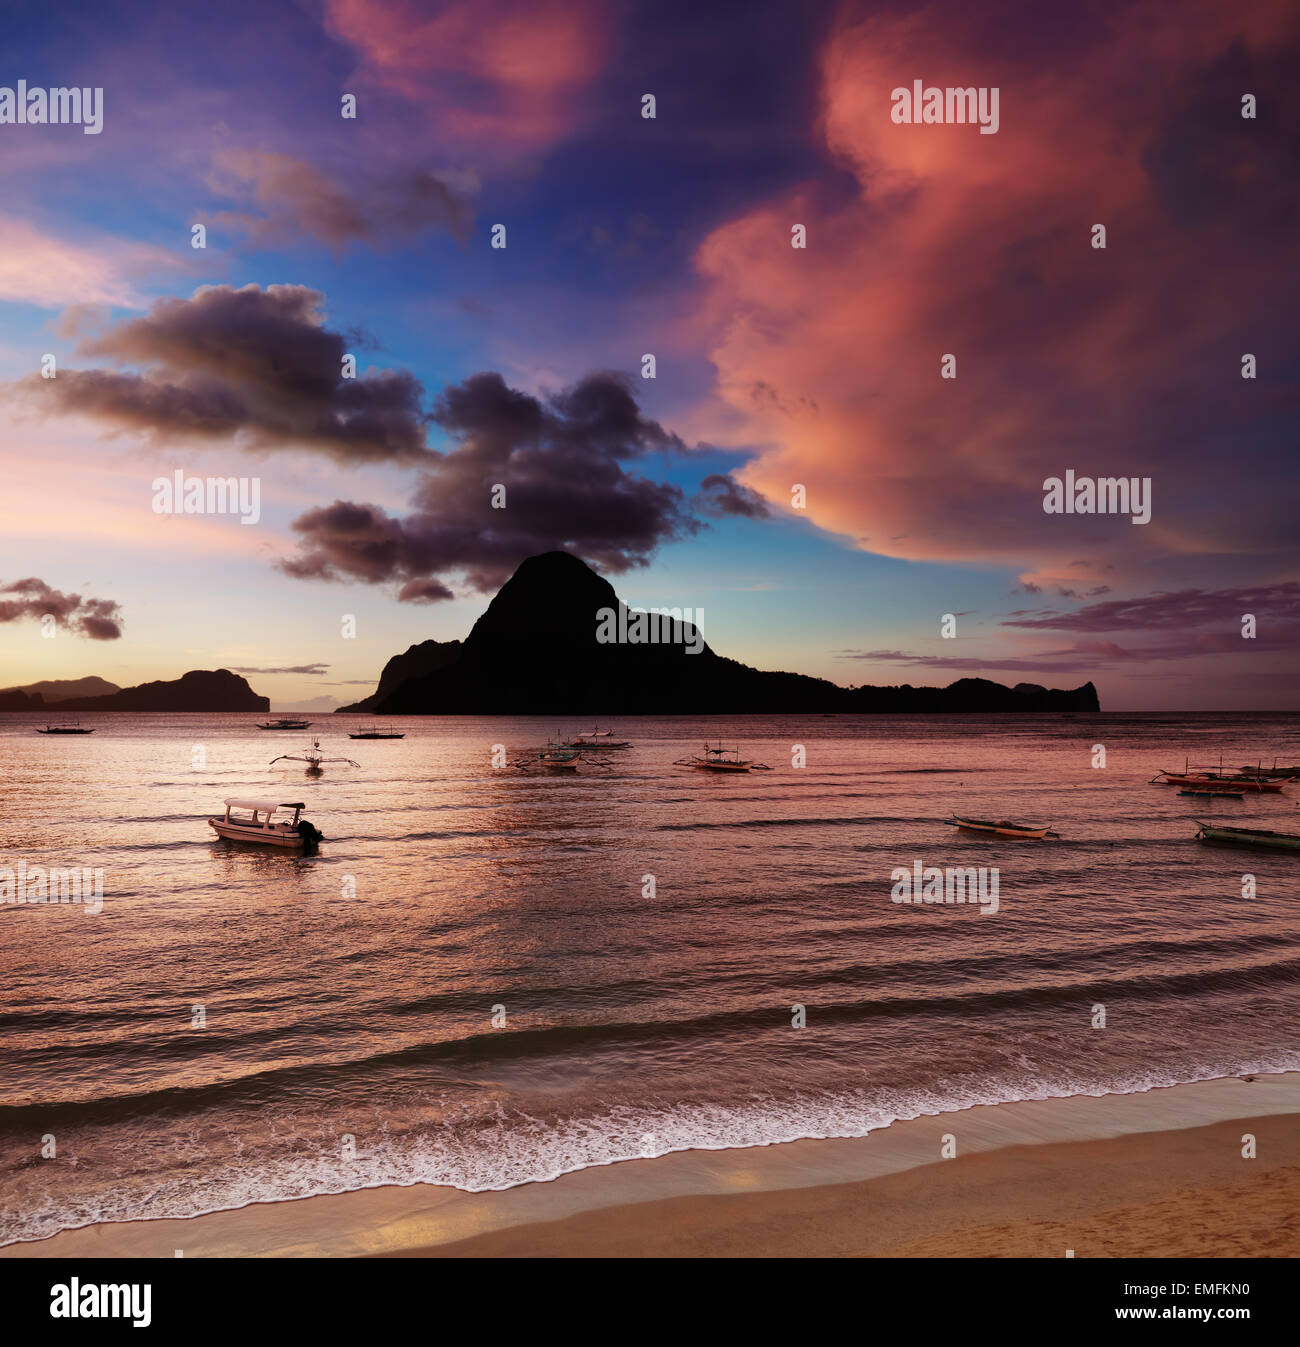 El Nido bay et l'île Cadlao au coucher du soleil, Palawan, Philippines Photo Stock